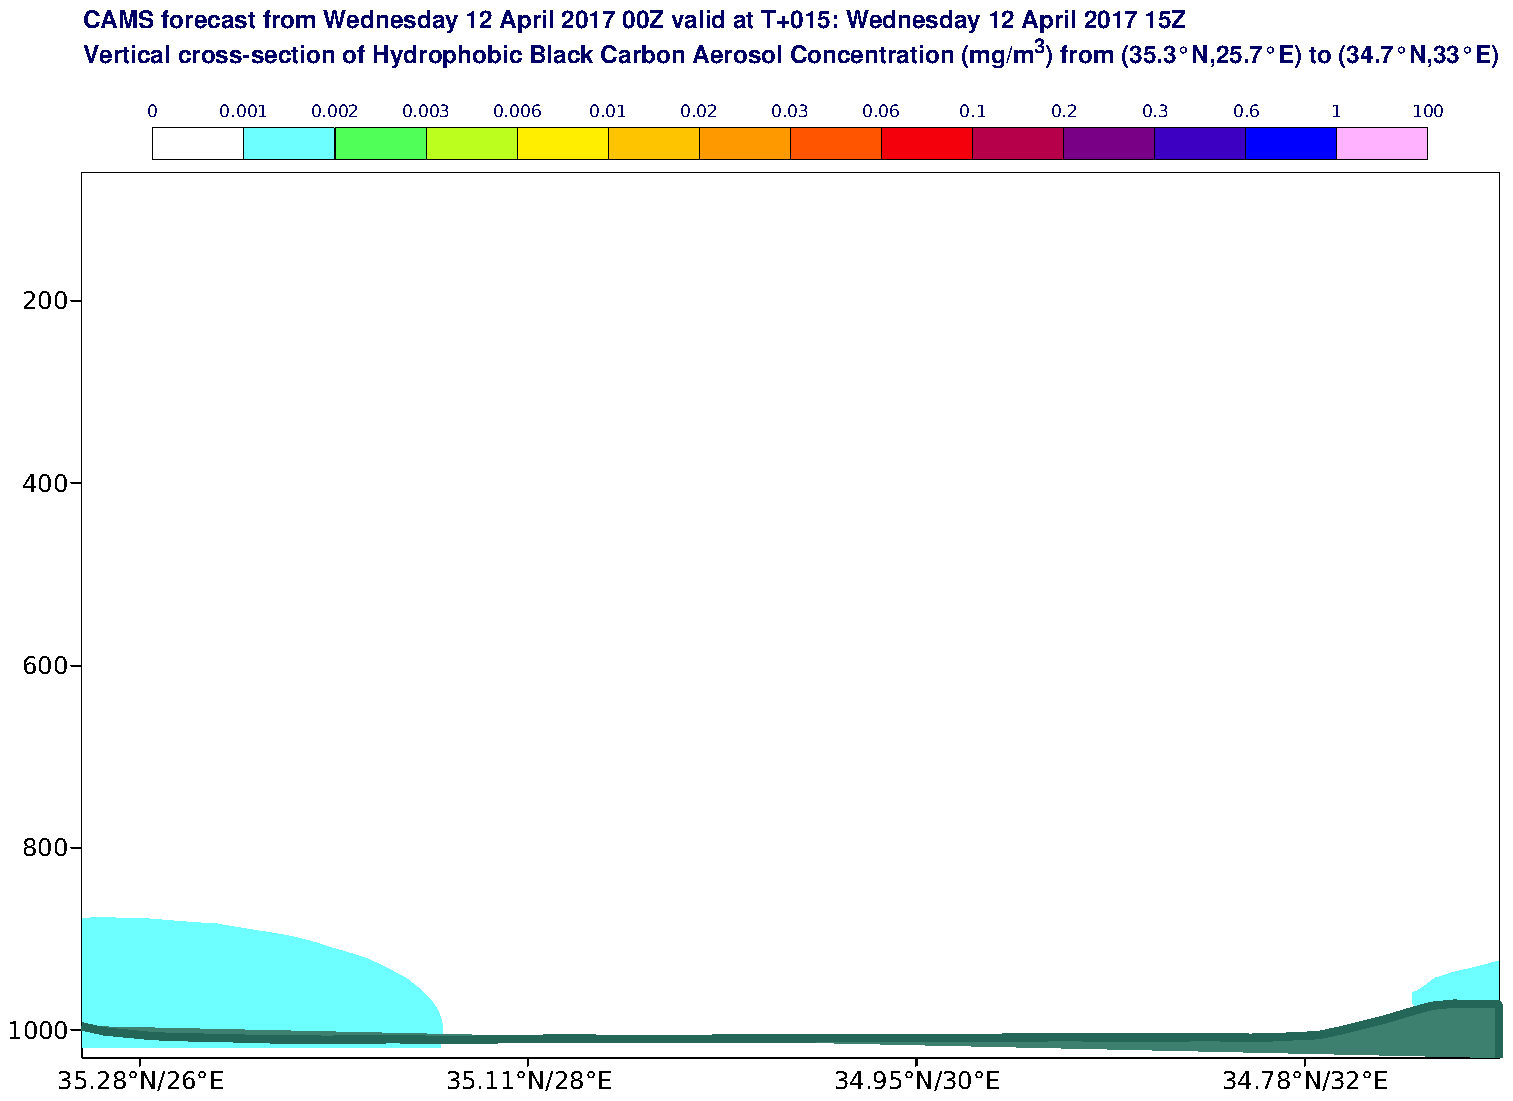 Vertical cross-section of Hydrophobic Black Carbon Aerosol Concentration (mg/m3) valid at T15 - 2017-04-12 15:00